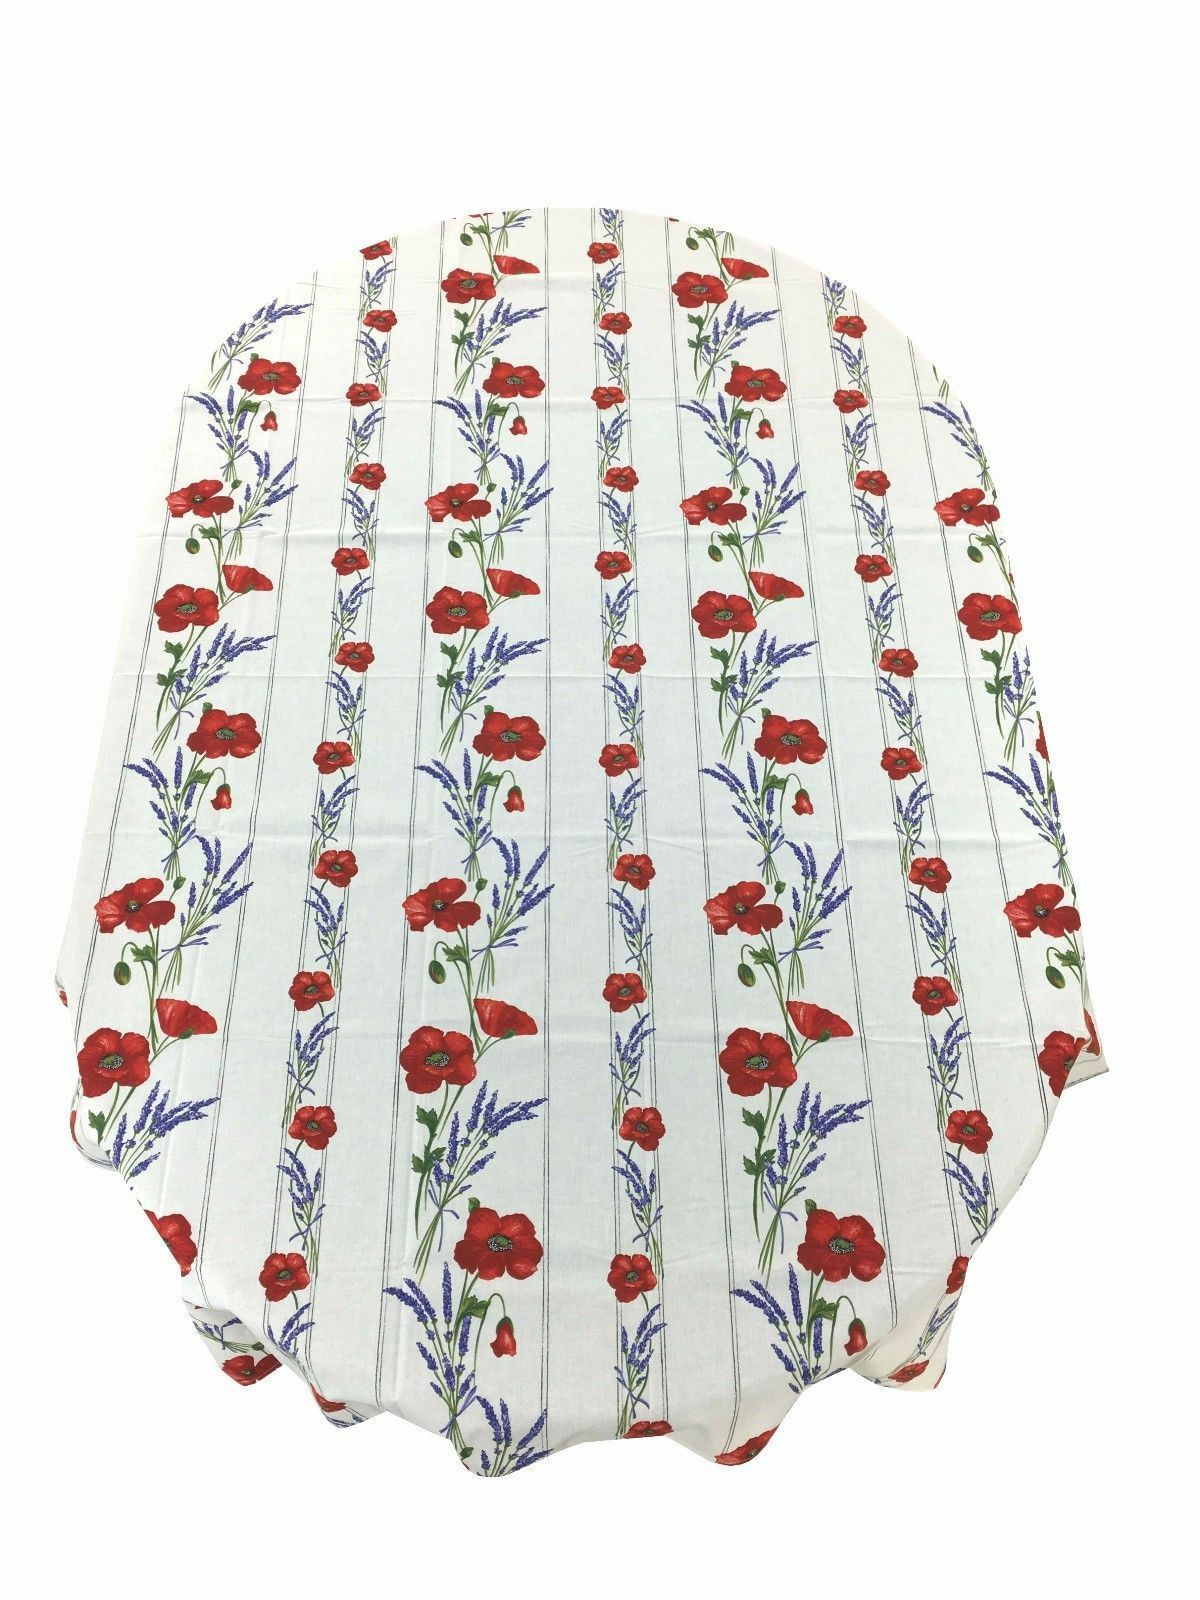 Provencal Coated Cotton Tablecloth Poppies Lavender Cream France 59 X 79